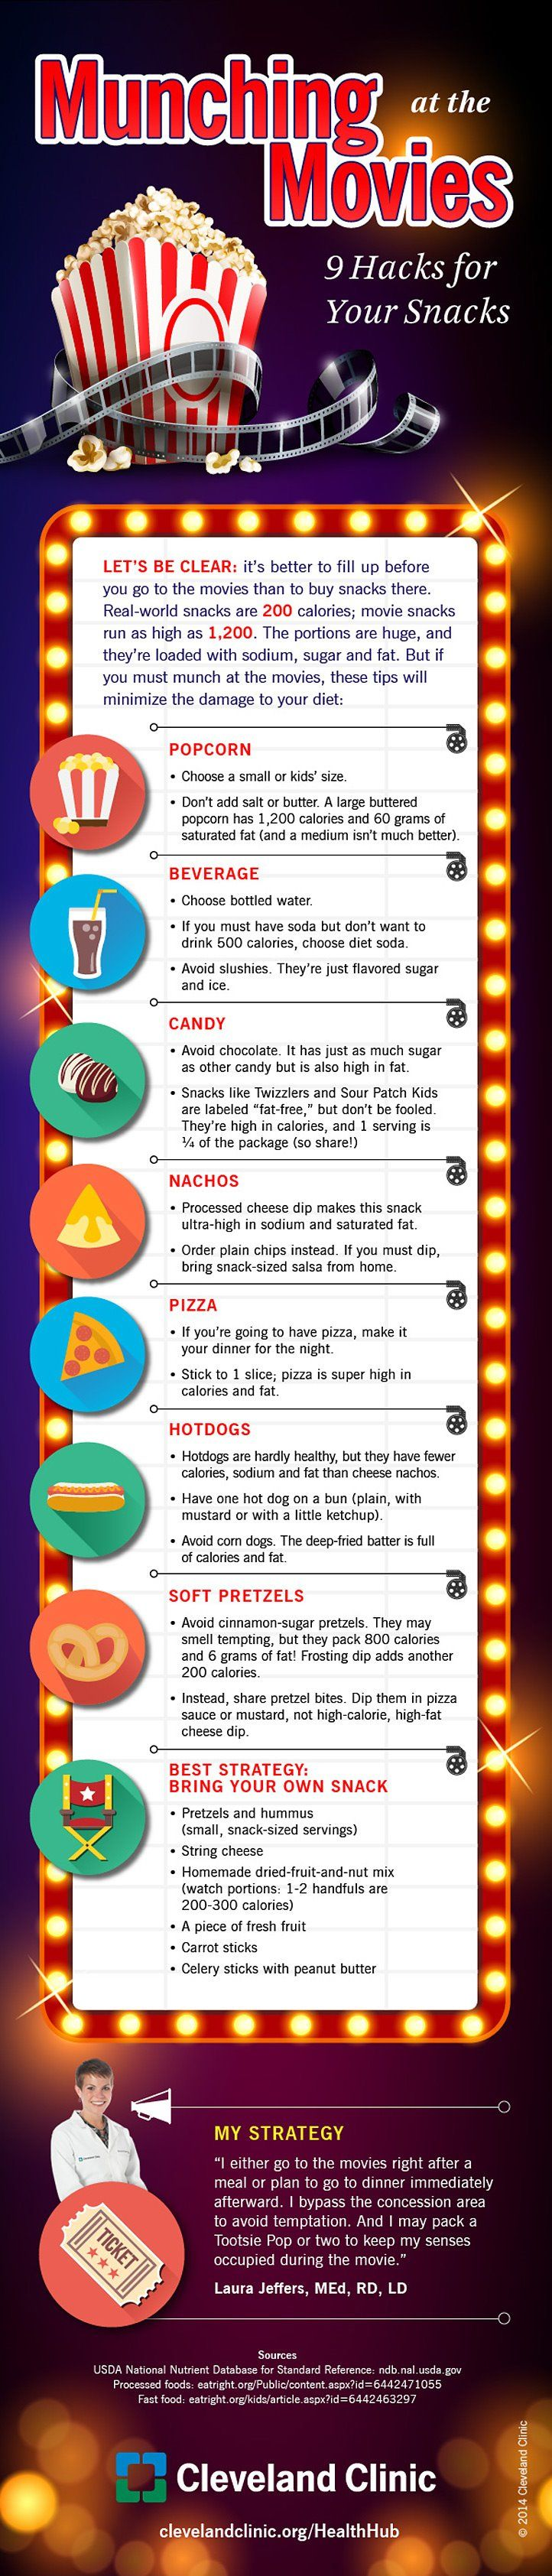 8 Best Venus Factor Weight Loss Images On Pinterest Losing Simple Circuit Workout More Workouts Teamsexy 9 Tips For Healthier Munching At The Movies